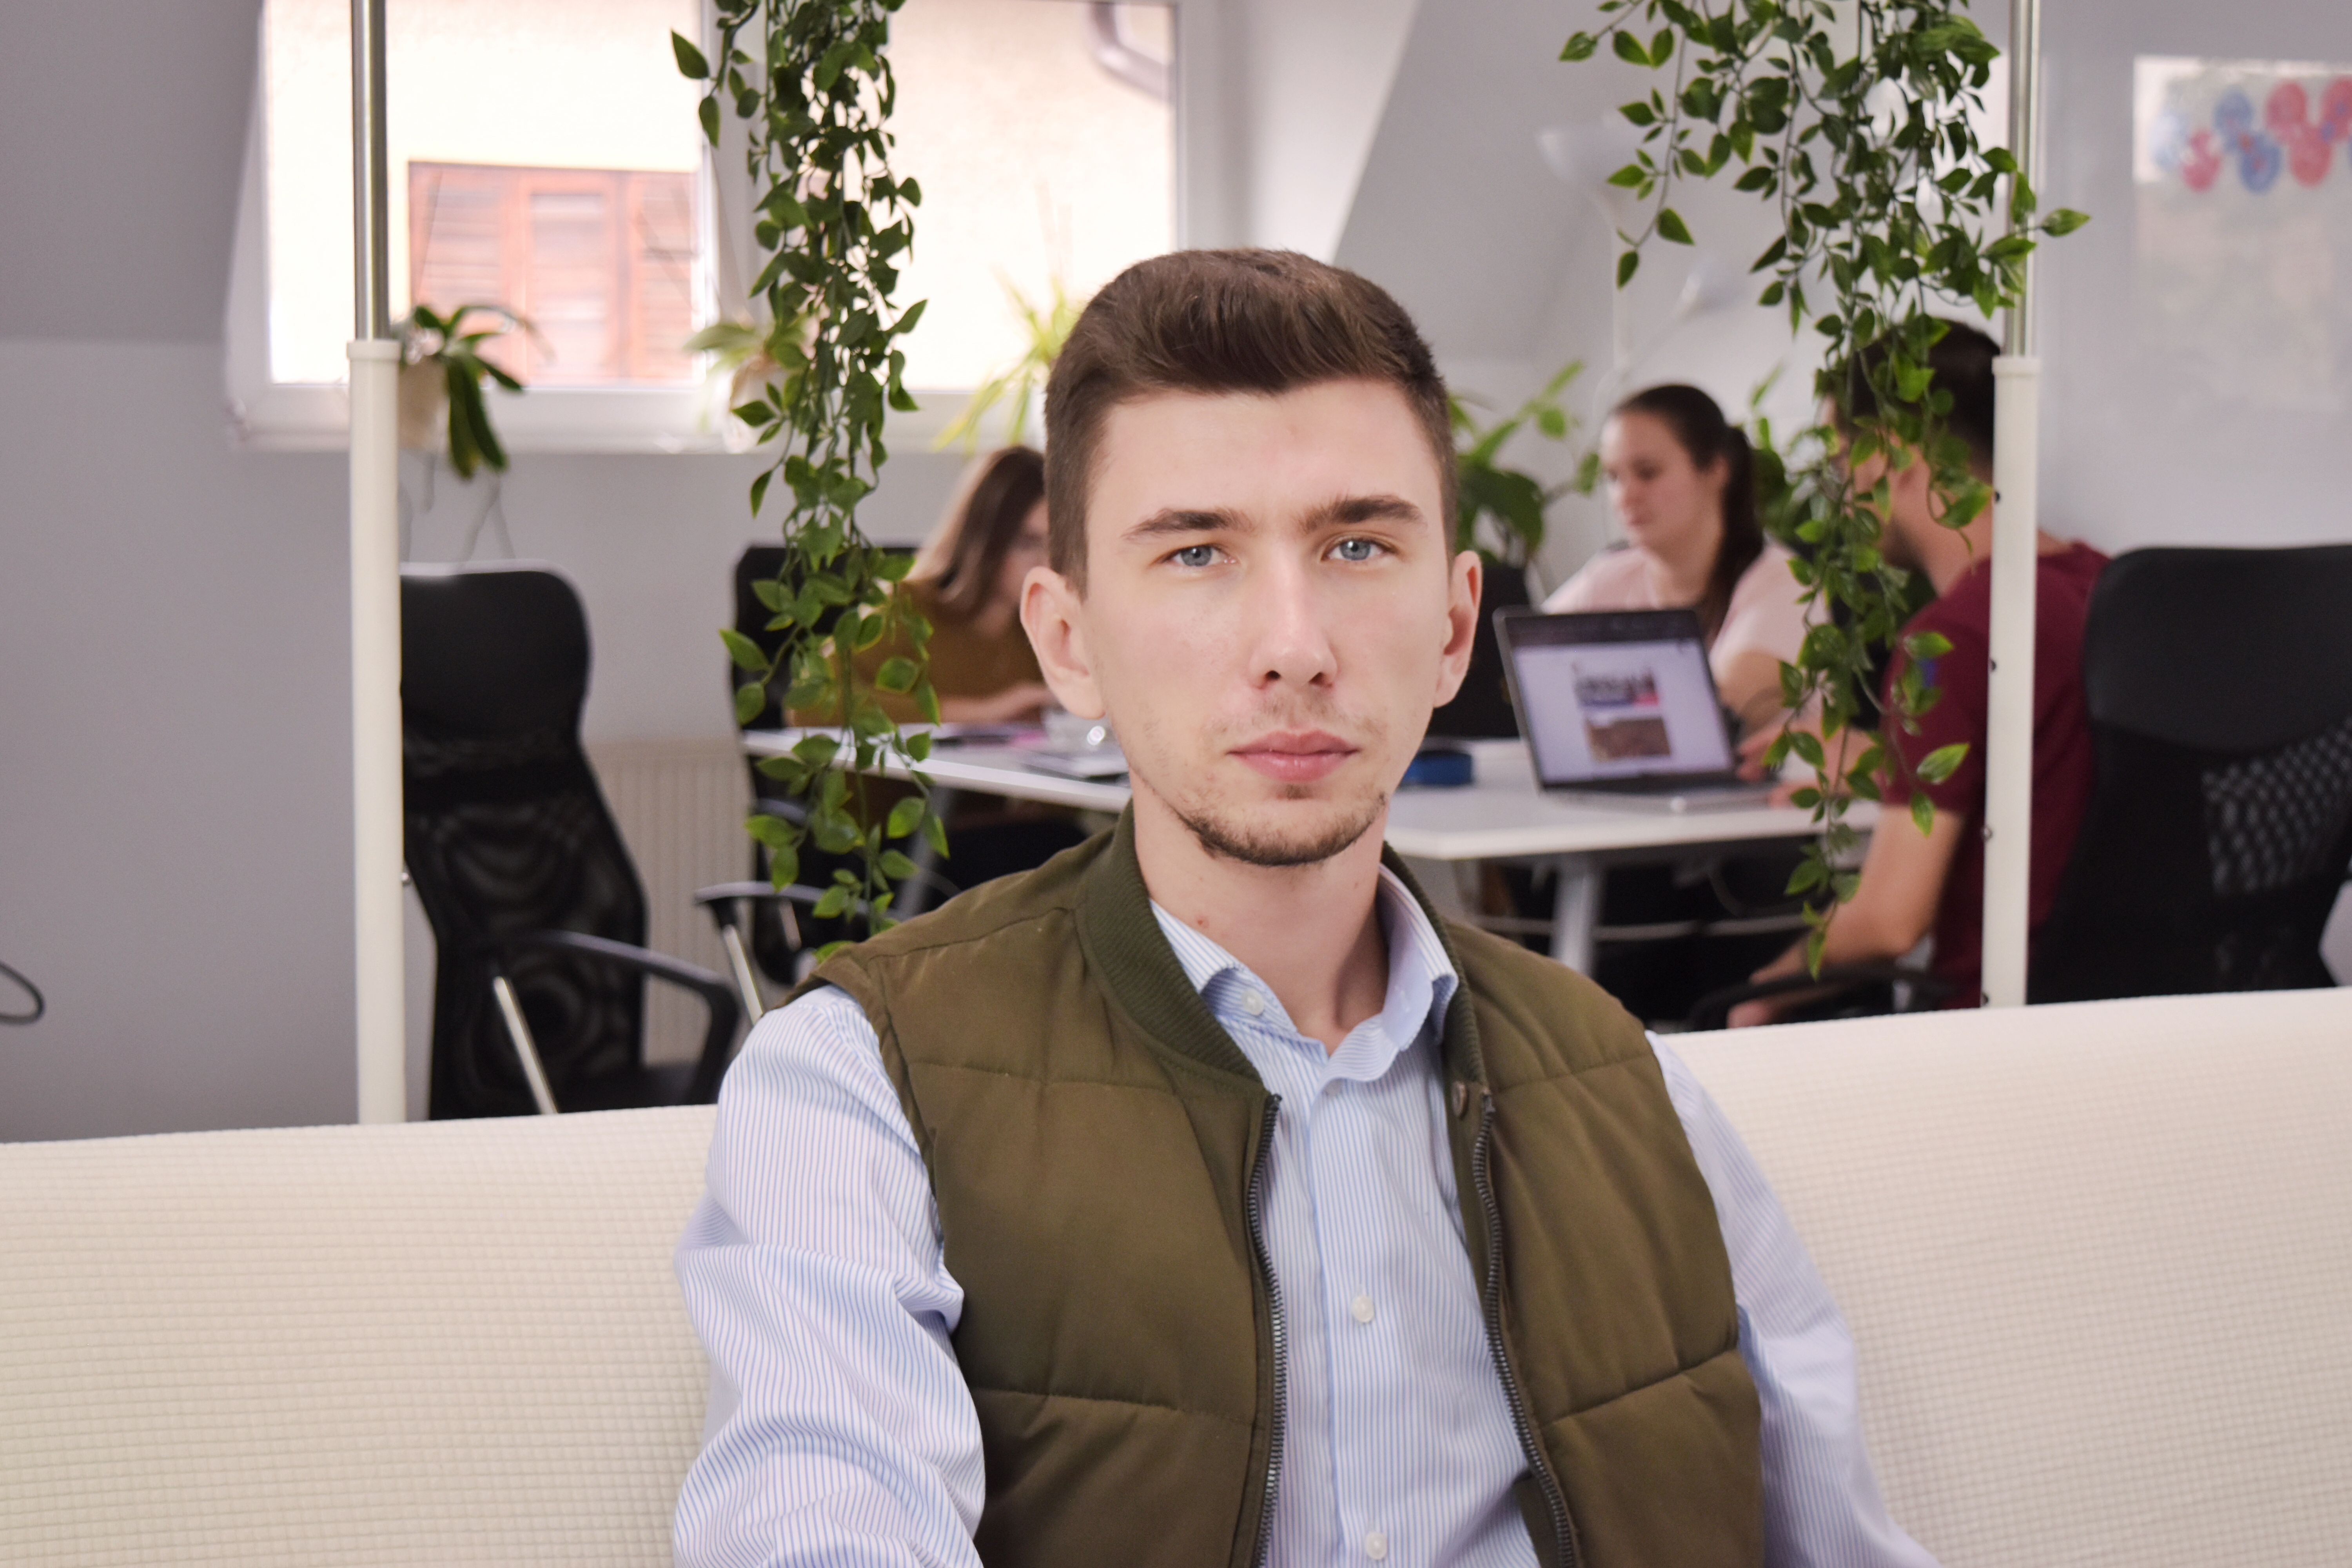 Meet George, our Project Manager